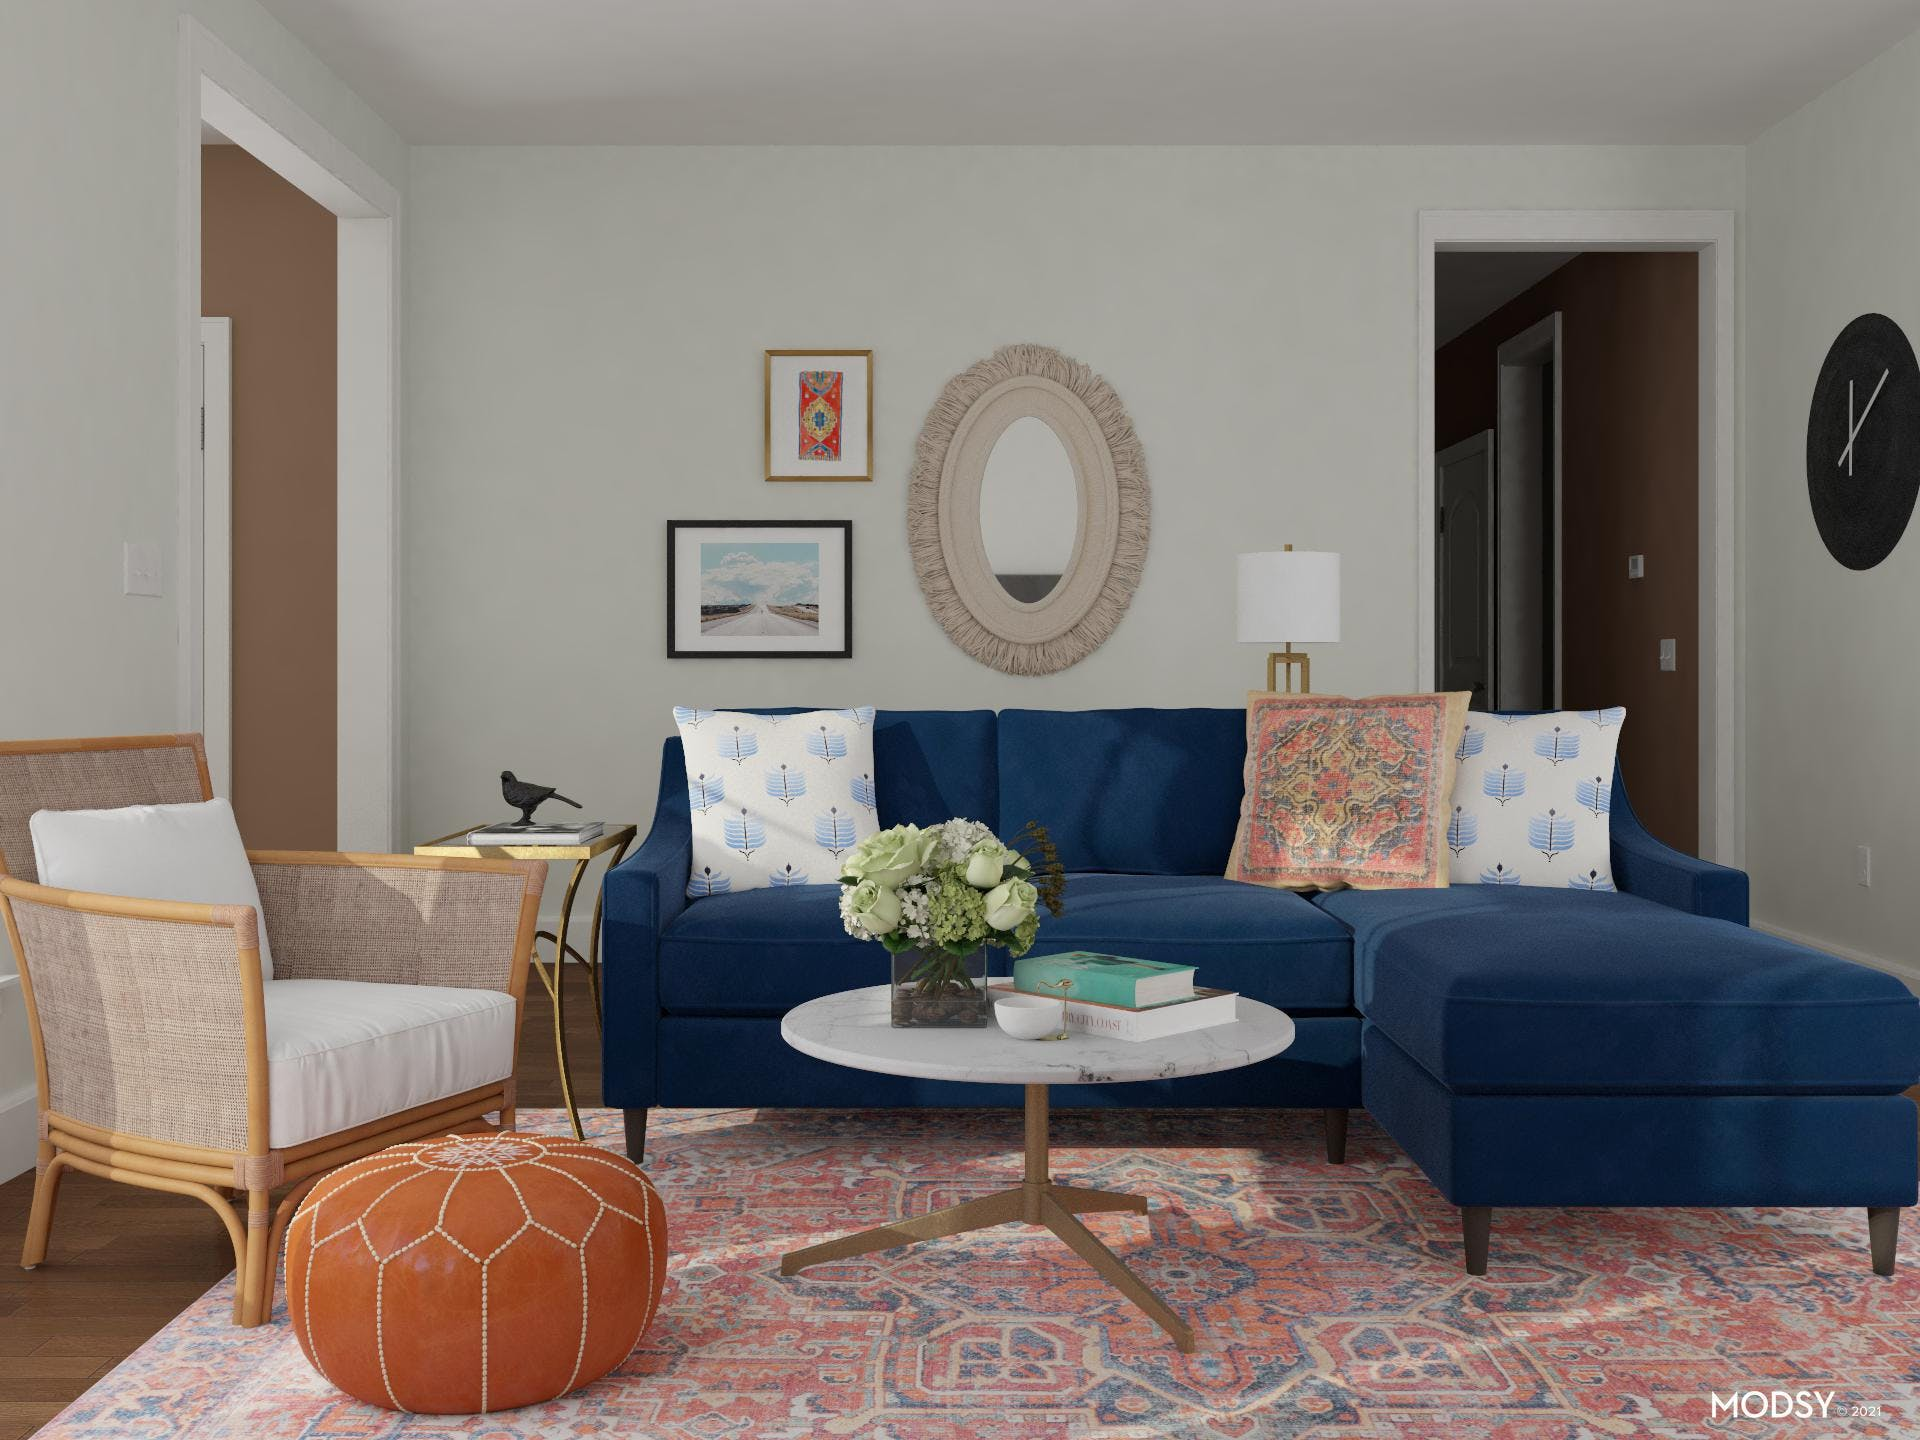 Eclectic And Elegant